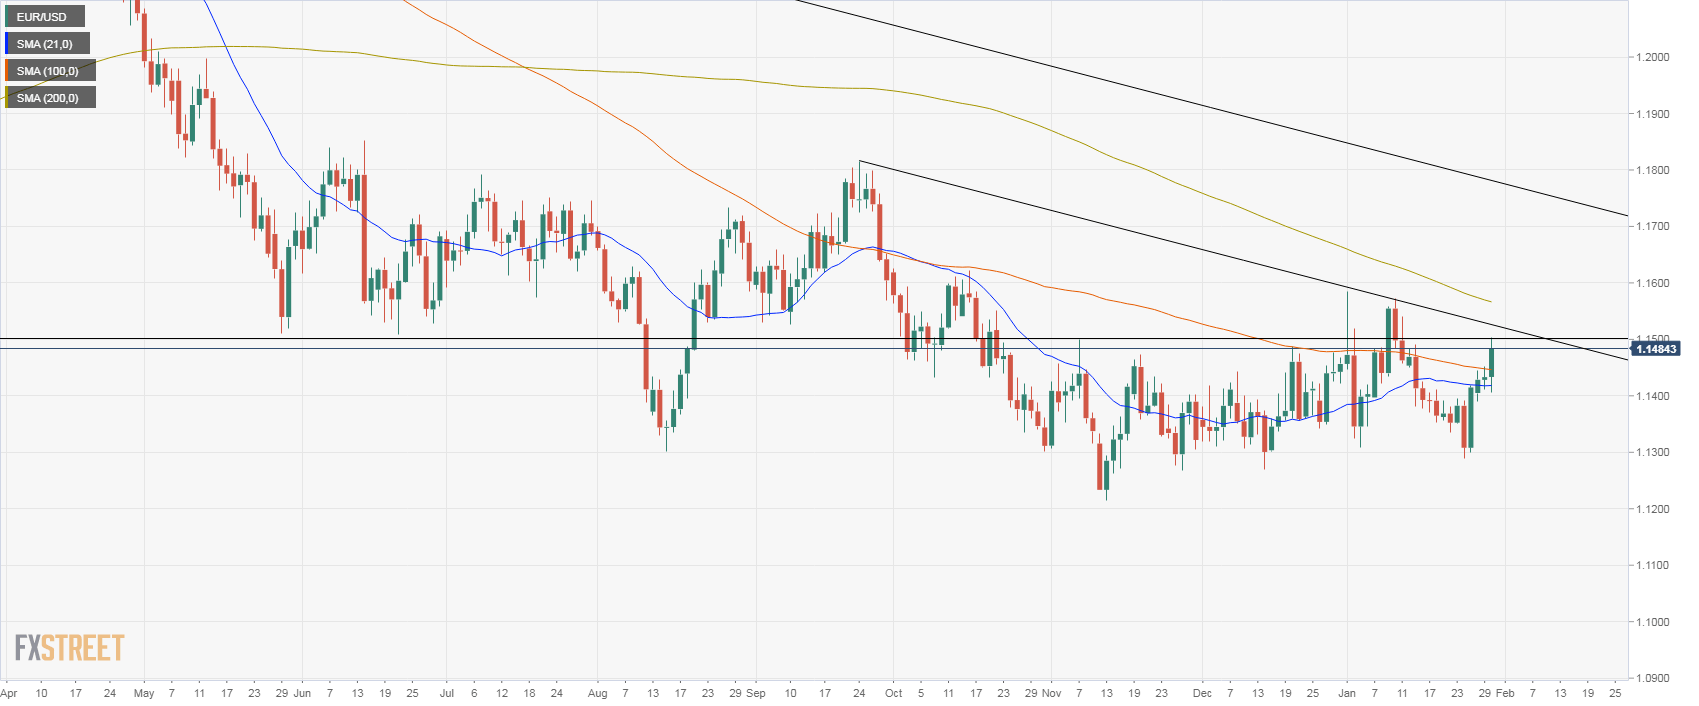 EUR/USD Technical Analysis: Euro rises to test 1.1500 after Fed's meeting   Forex Crunch